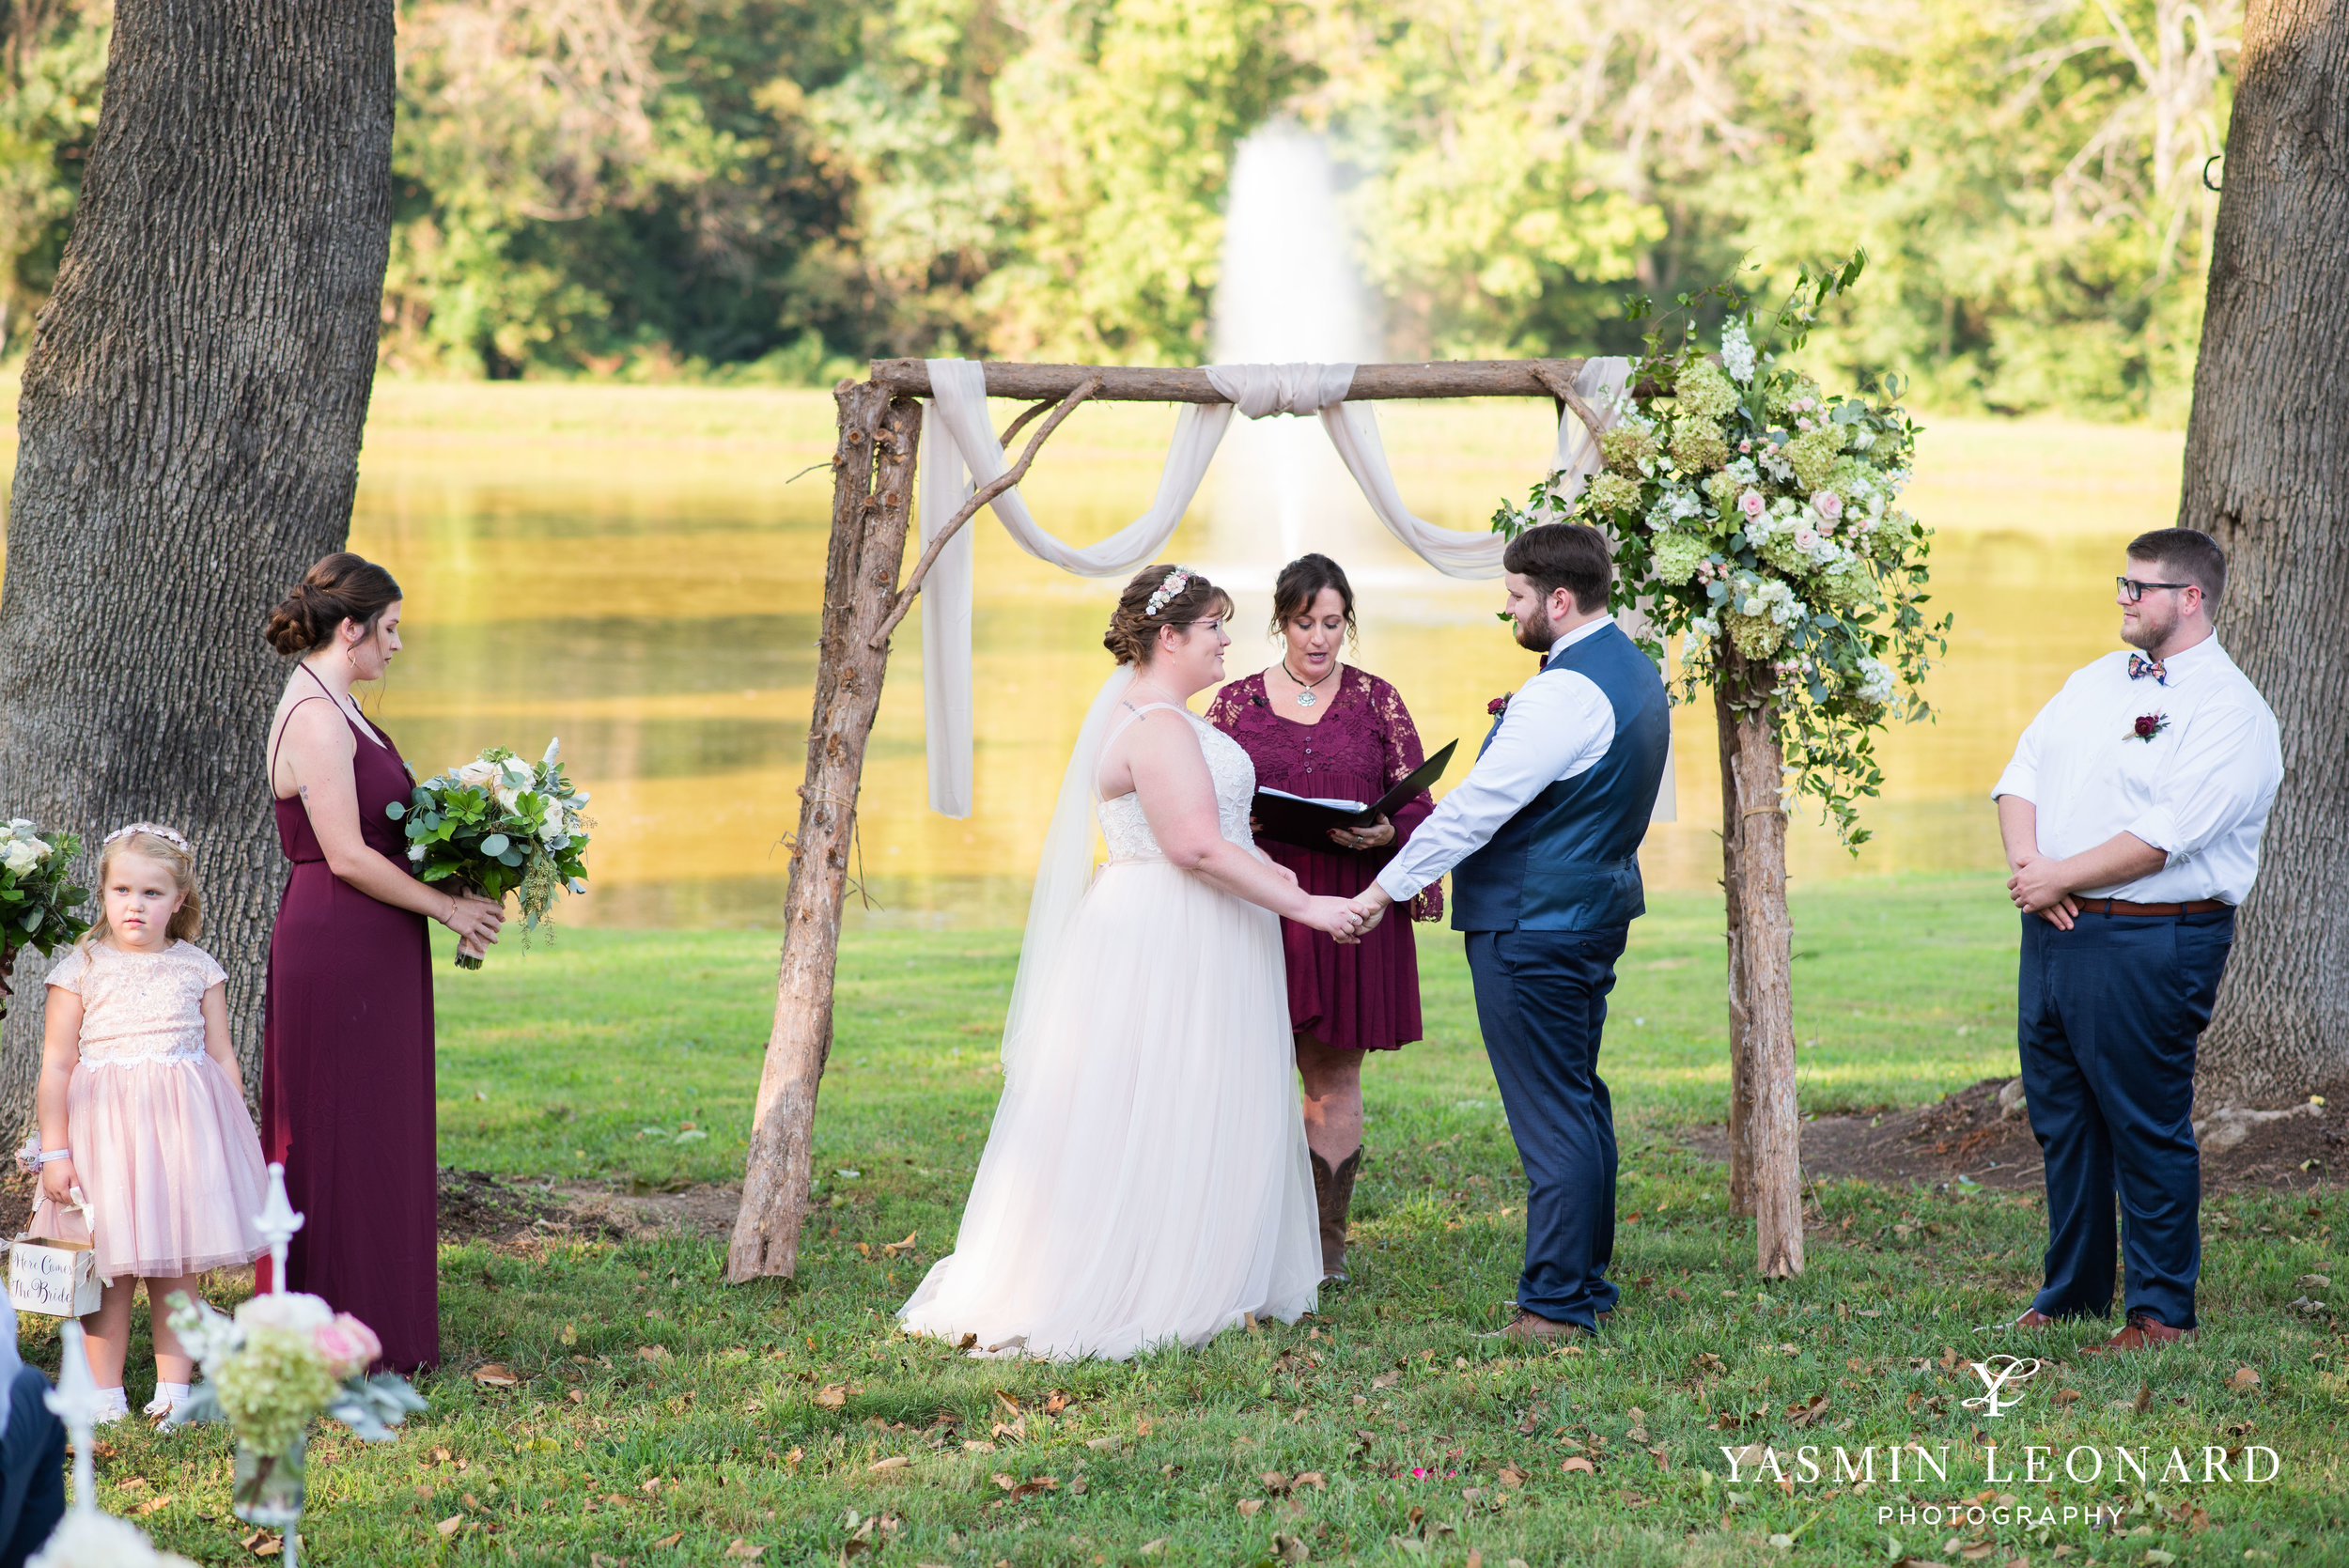 Hannah and David - l'abri at Linwood - NC Barn Weddings - Guys and Girls on Bride's Side - How to incorporate guys with bridesmaids - navy fall wedding - high point photographer - nc wedding venues - triad weddings-25.jpg